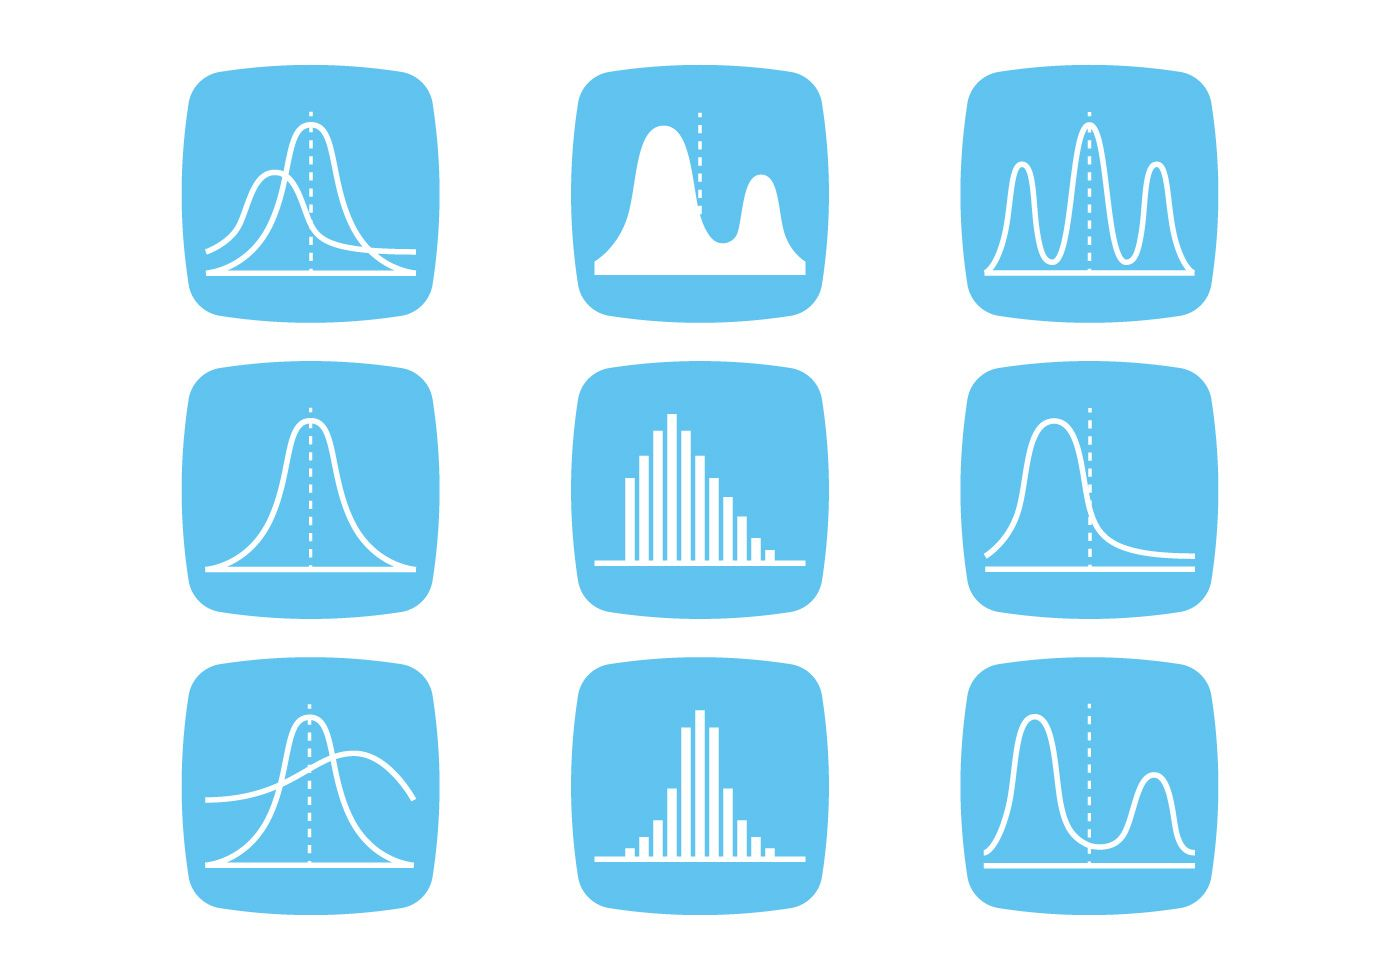 Bell Curve Icons Vector Choose From Thousands Of Free Vectors Clip Art Designs Icons And Illustrations Created Bell Curve Diagram Design Infographic Design